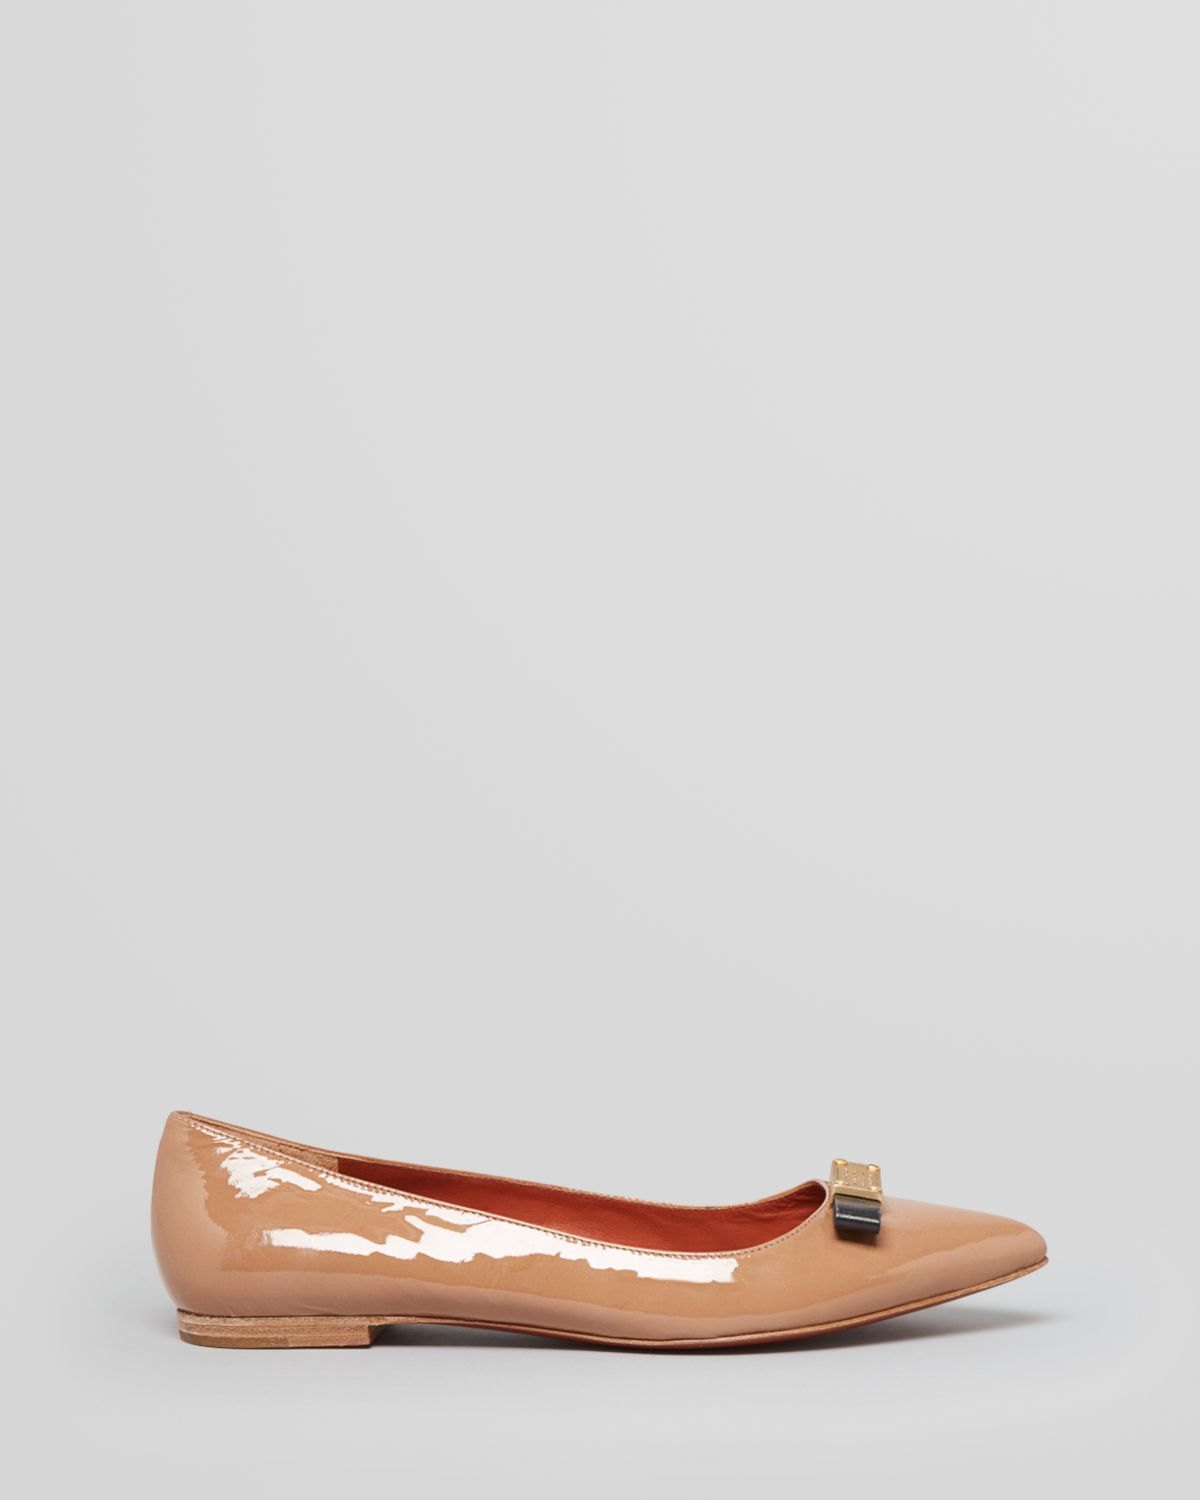 Marc Jacobs Patent Leather Pointed-Toe Flats